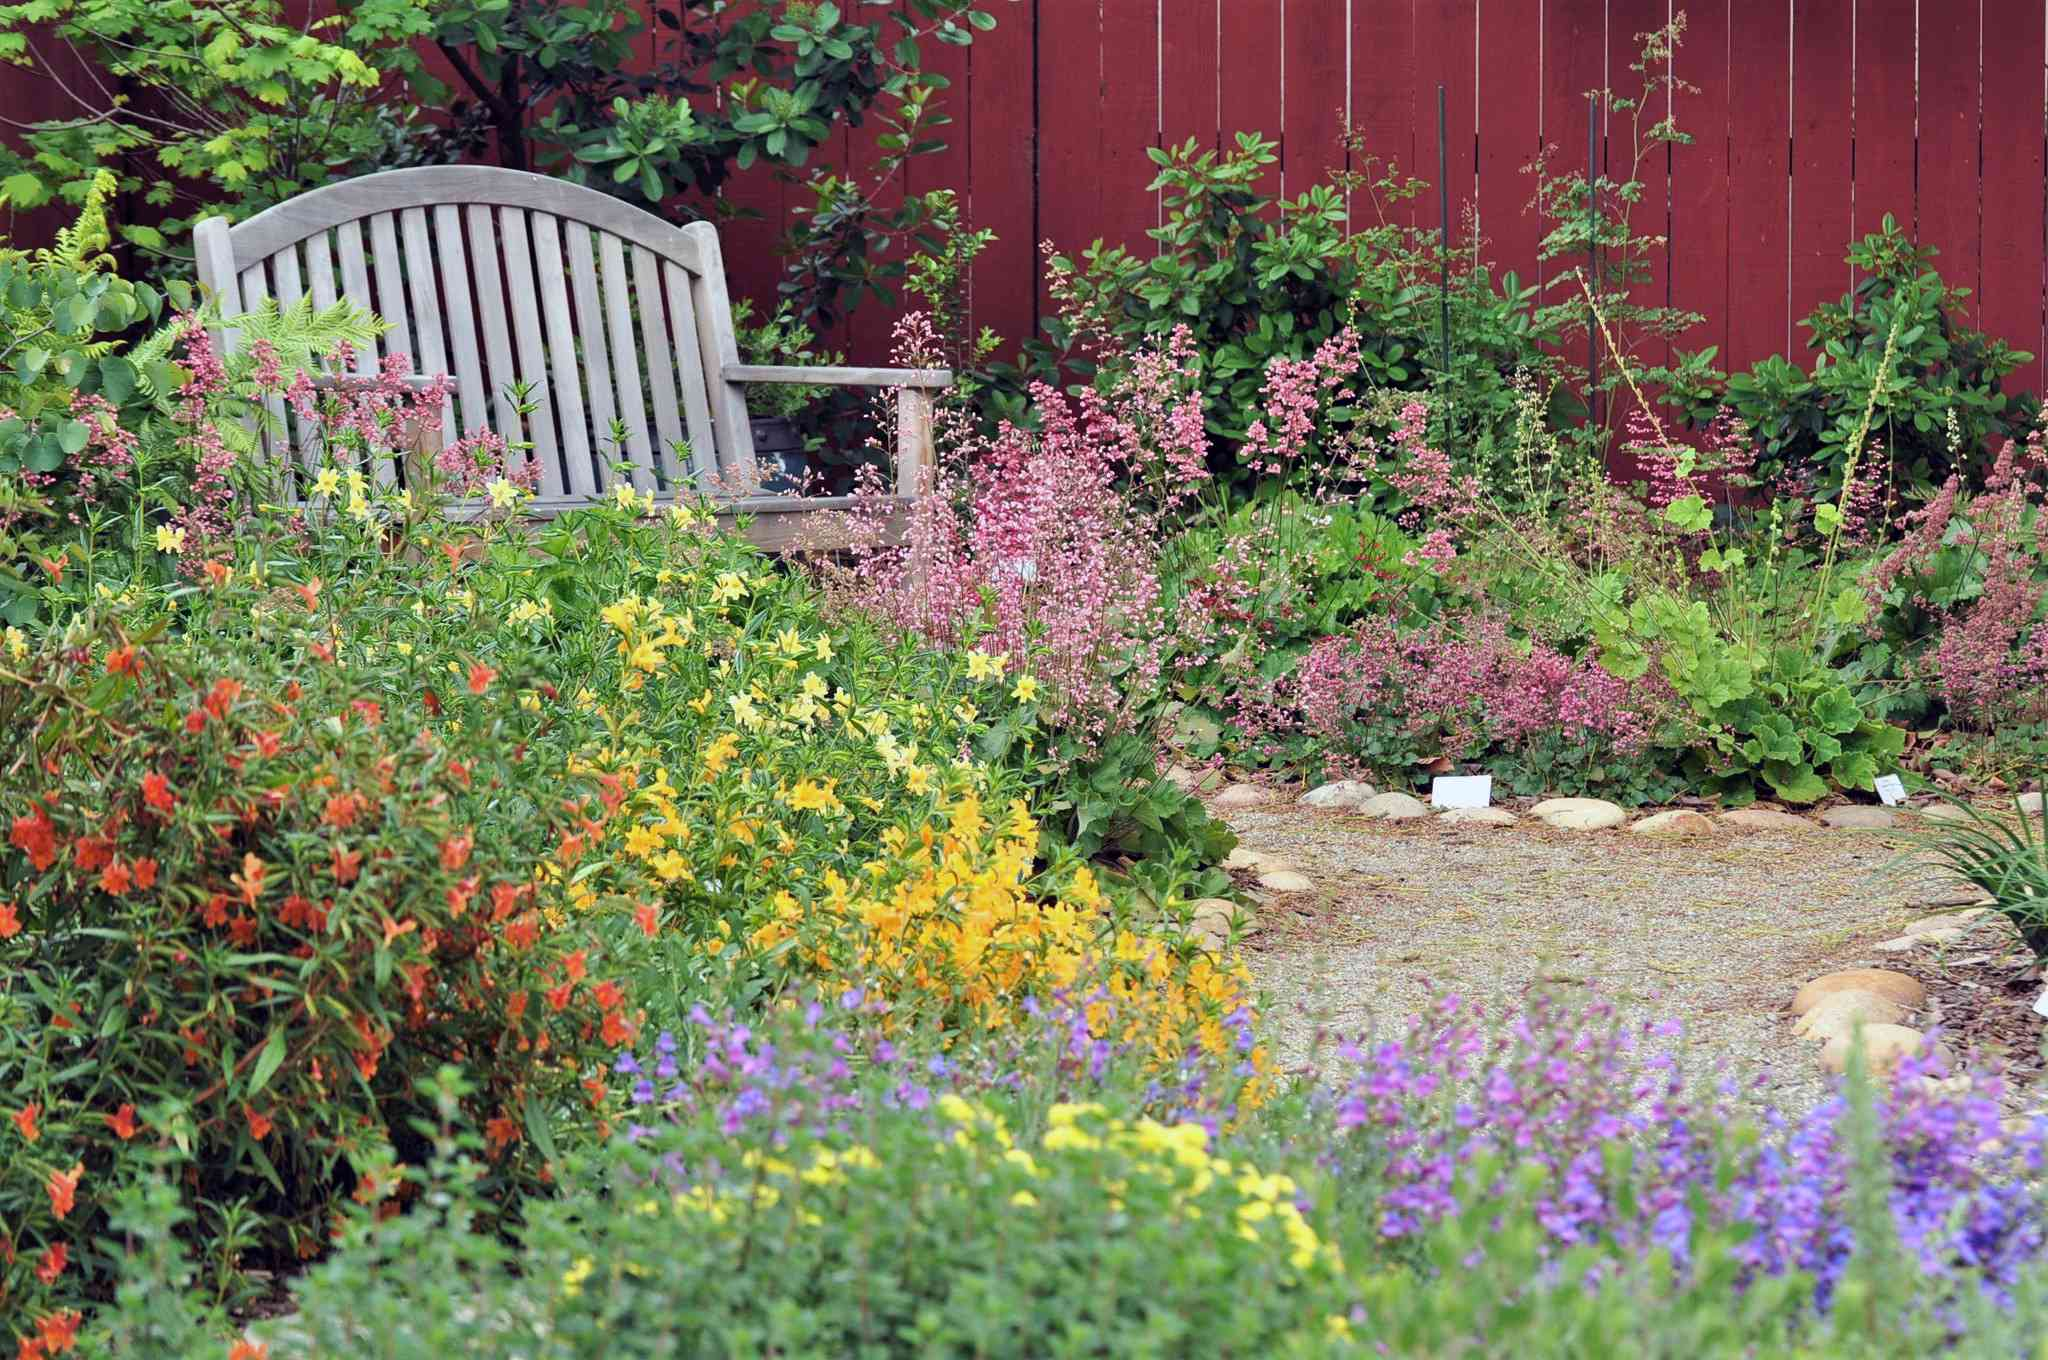 Native flowers in a garden with a bench